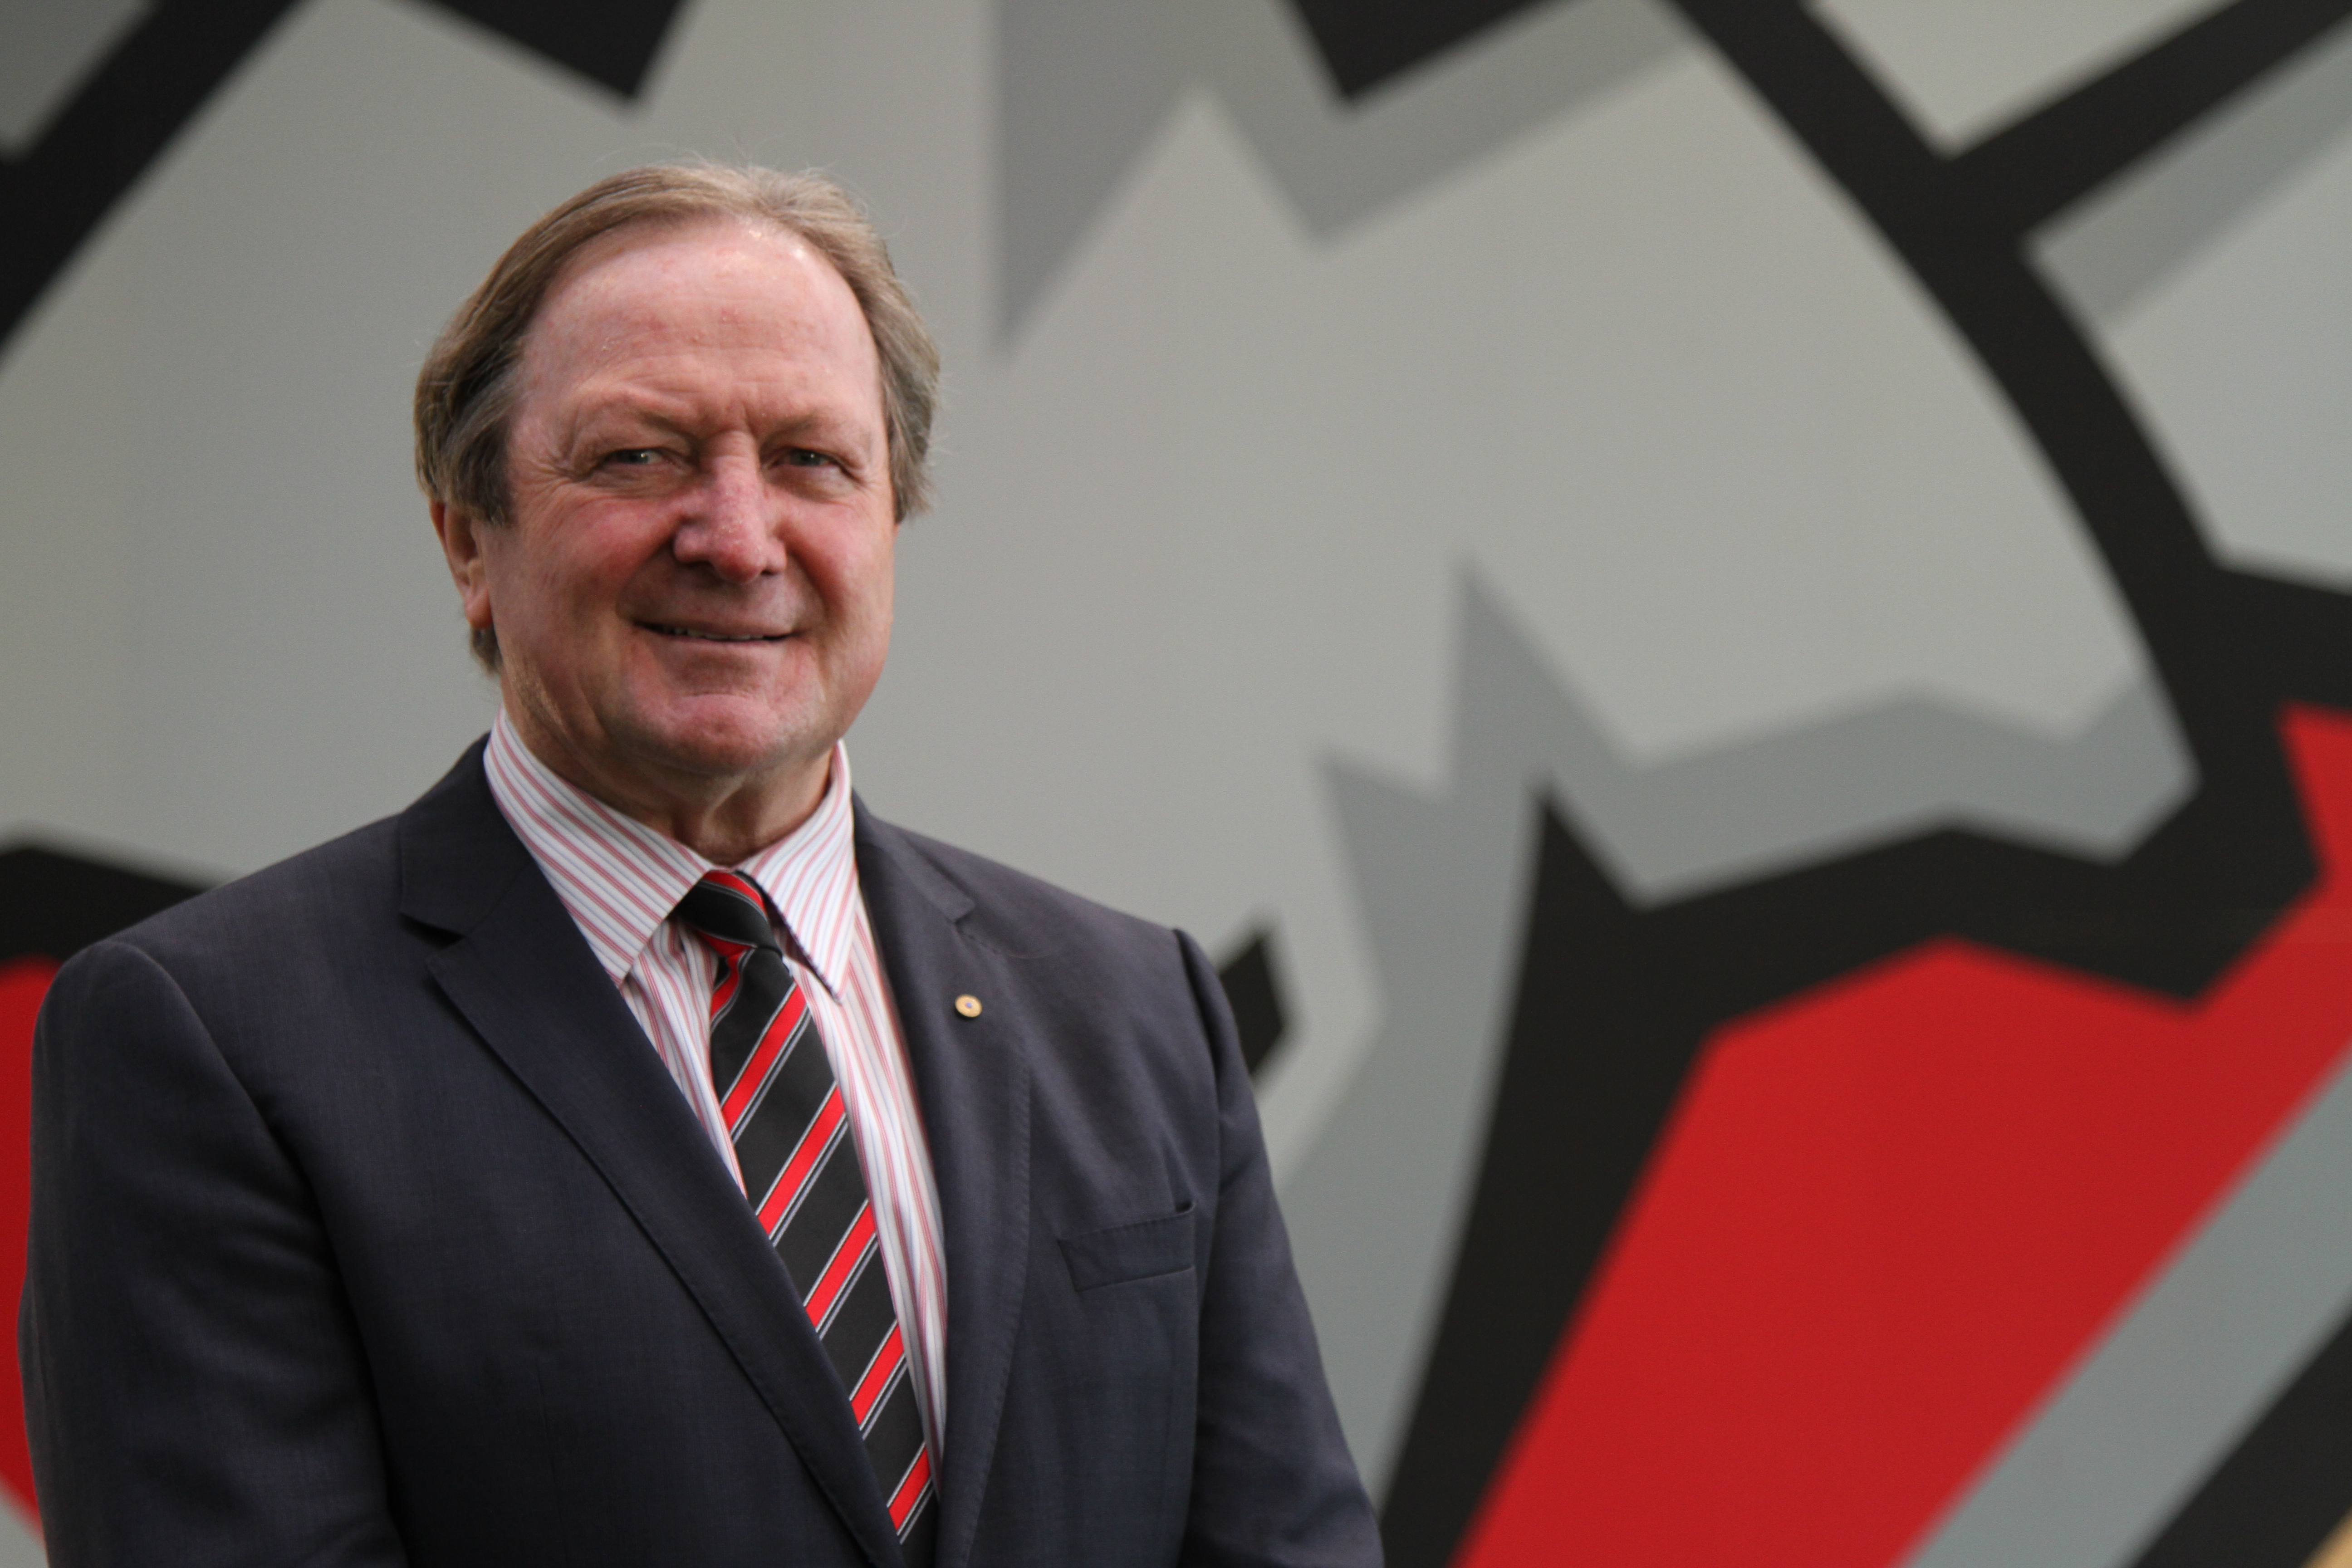 Kevin Sheedy, Ambassador to the Next Generation Farmer Project